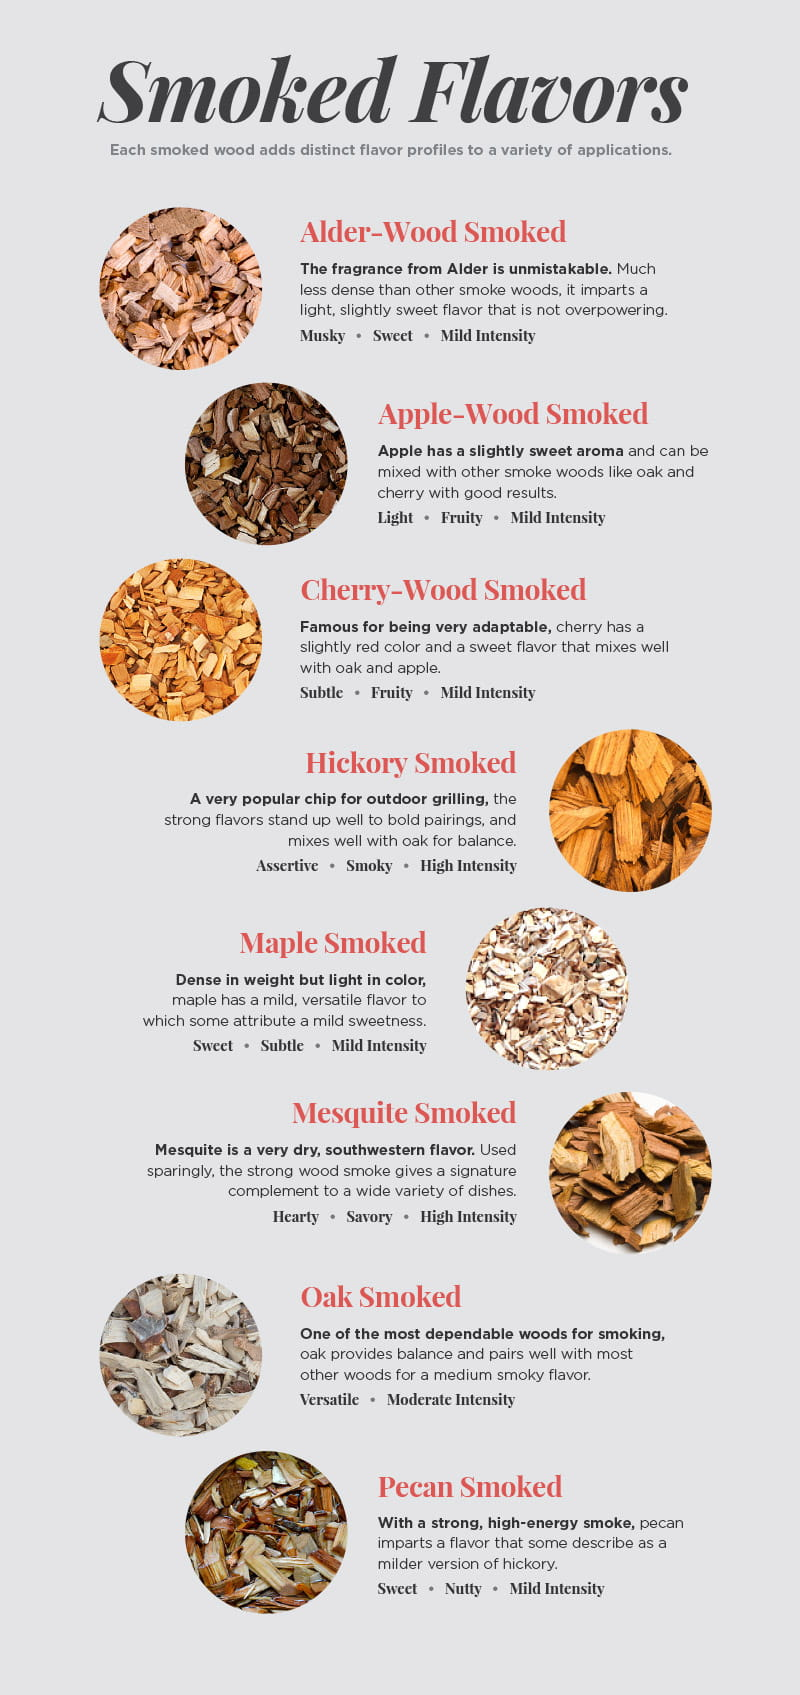 Smoked Flavor Guide